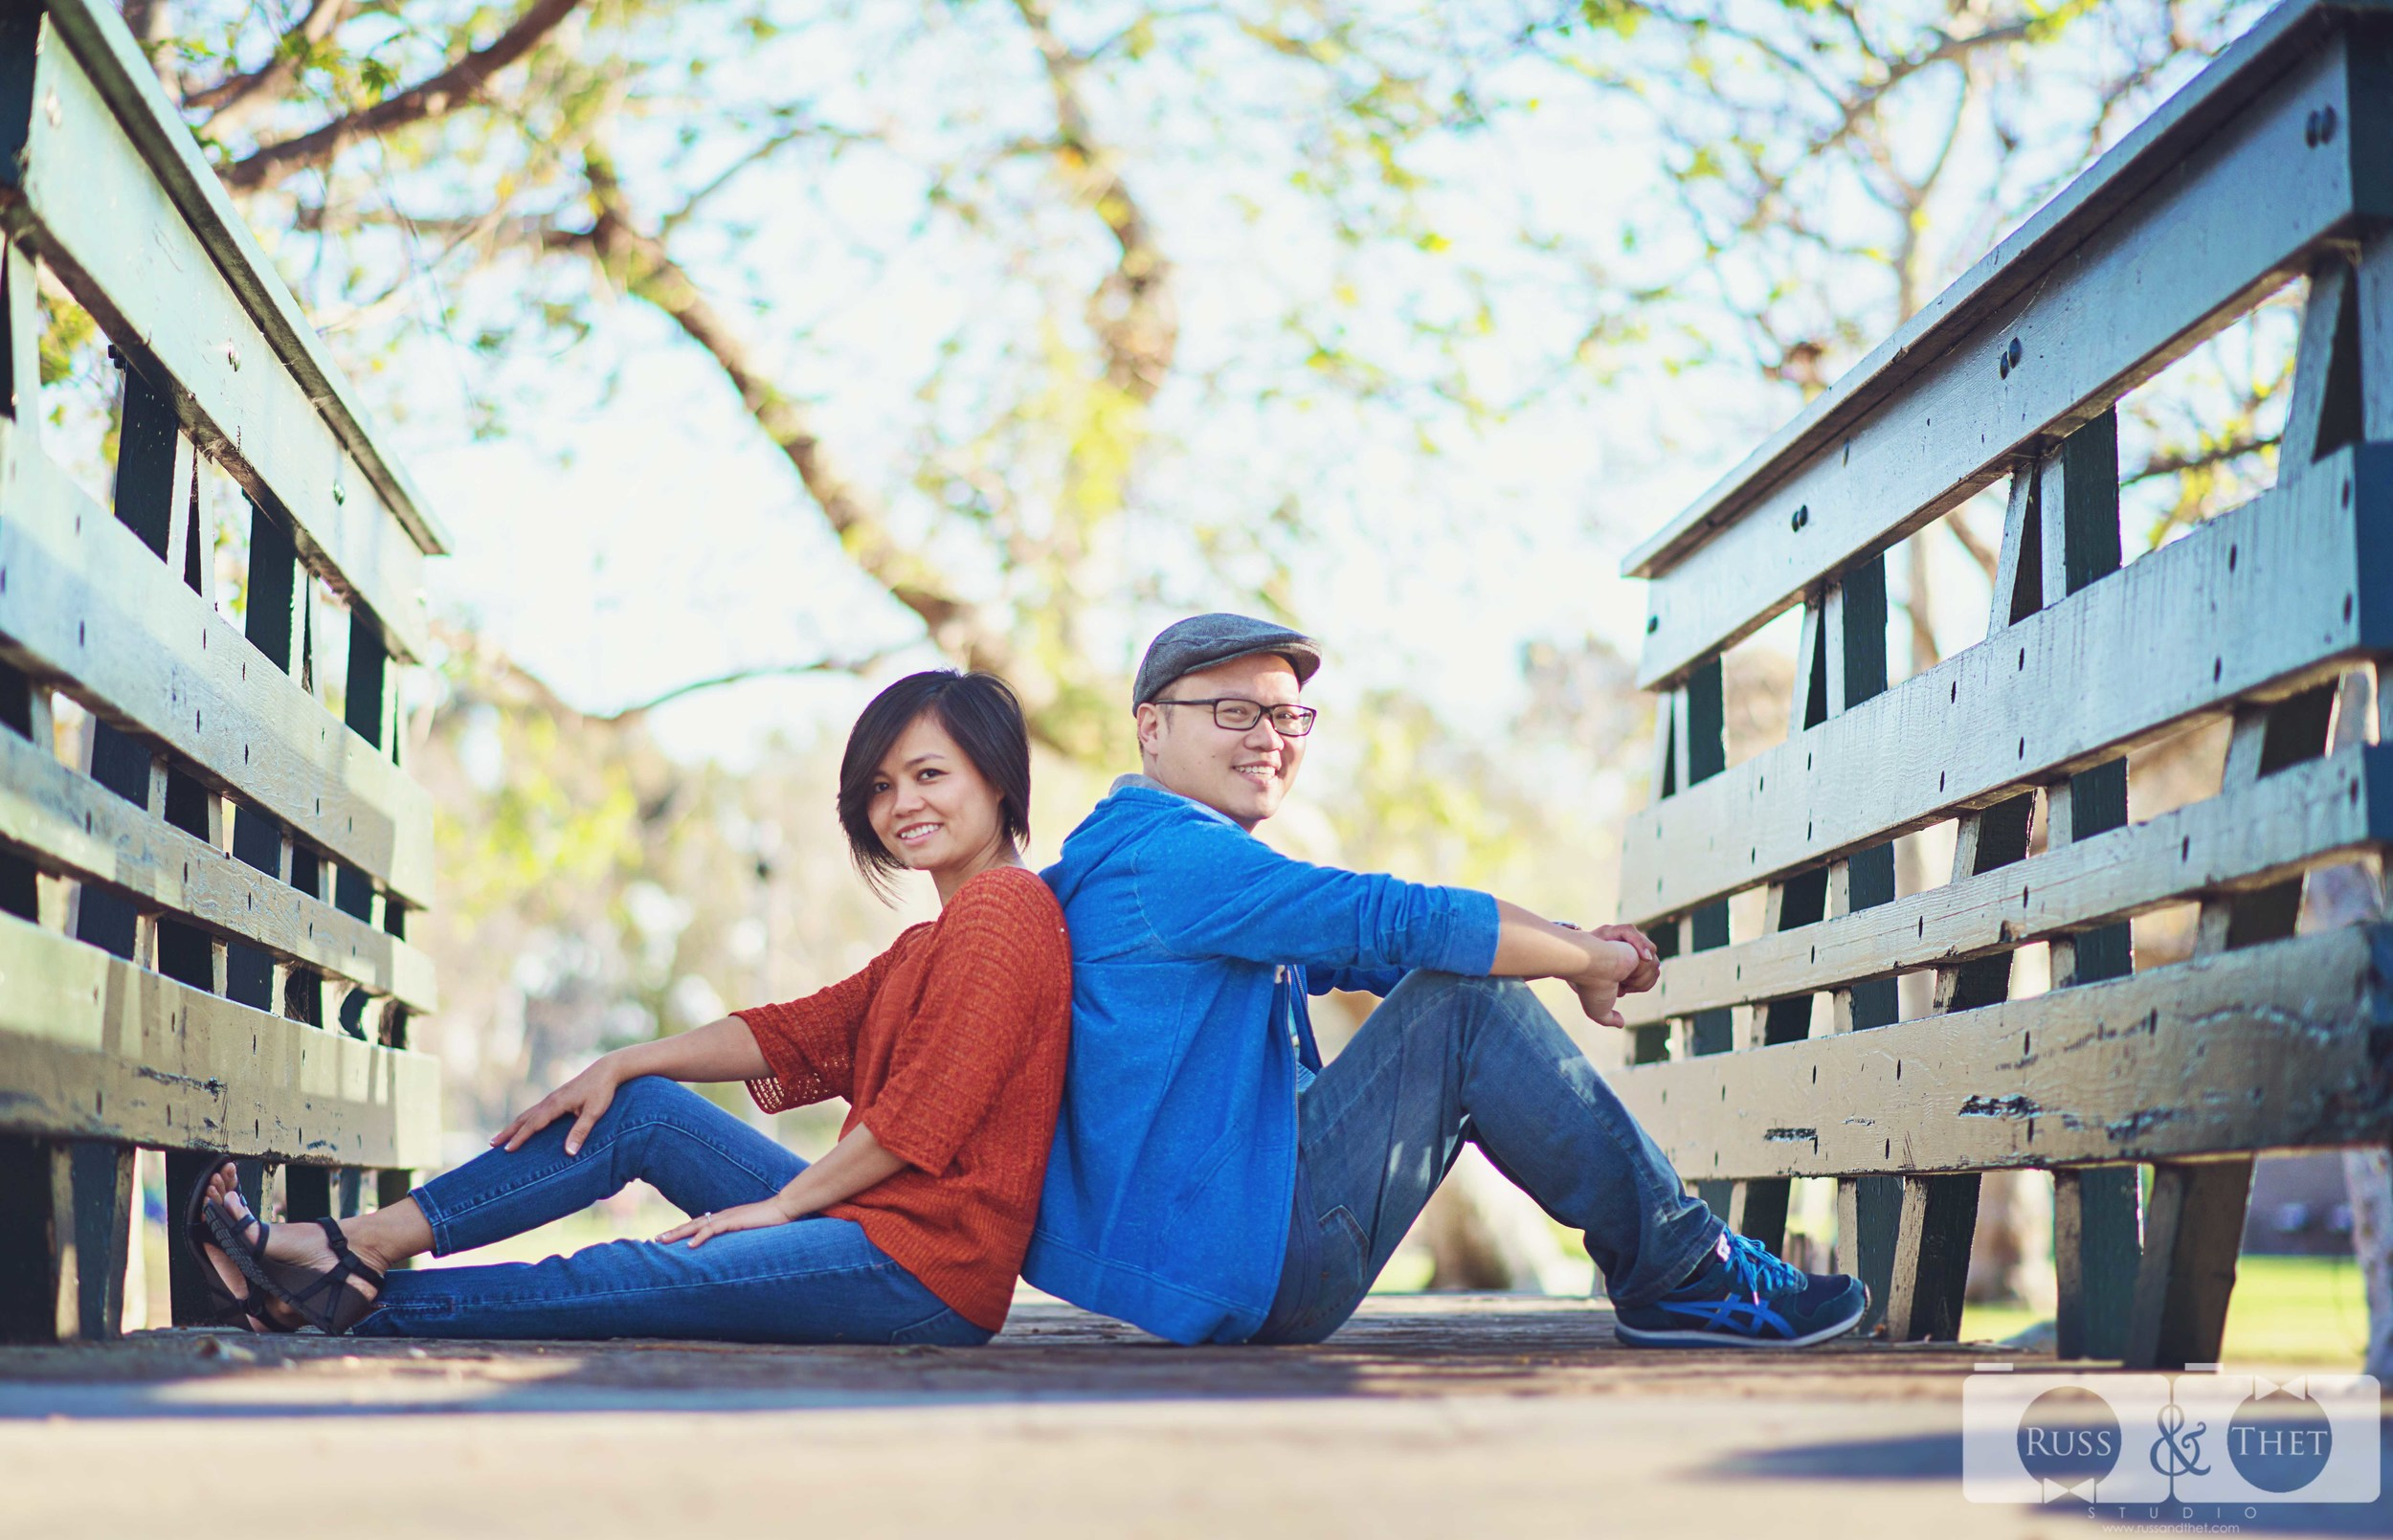 Mission-san-juan-capistrano-engagement-session-28.JPG